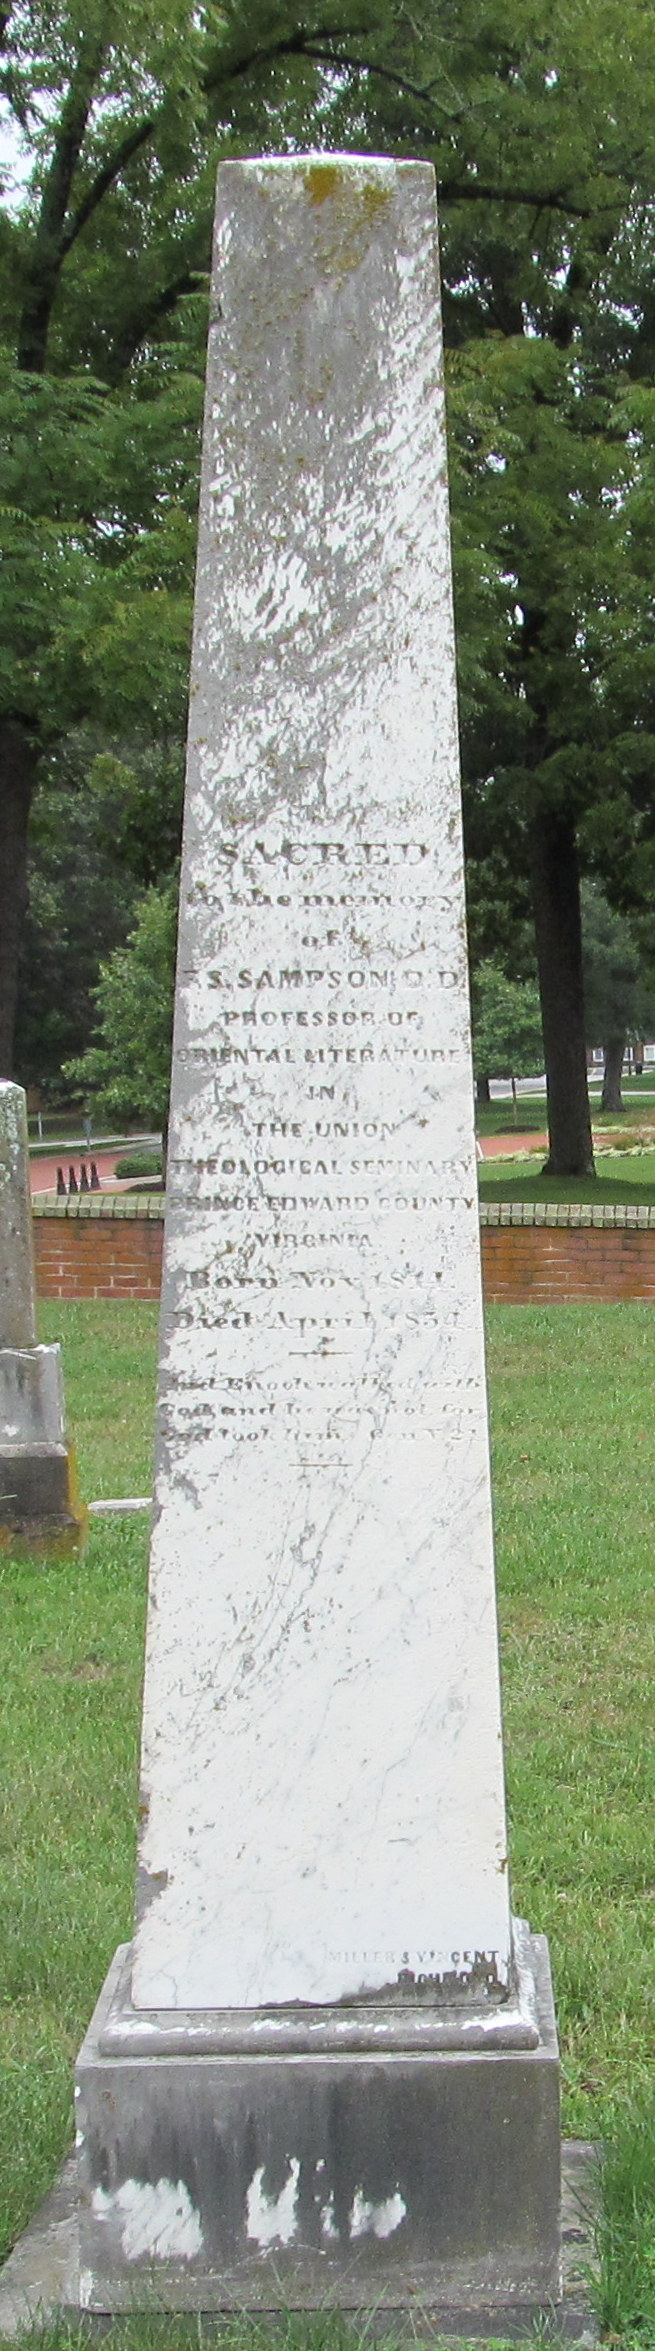 Francis Smith Sampson is buried at the Union Theological Seminary Cemetery, Hampden Sydney, Virginia.